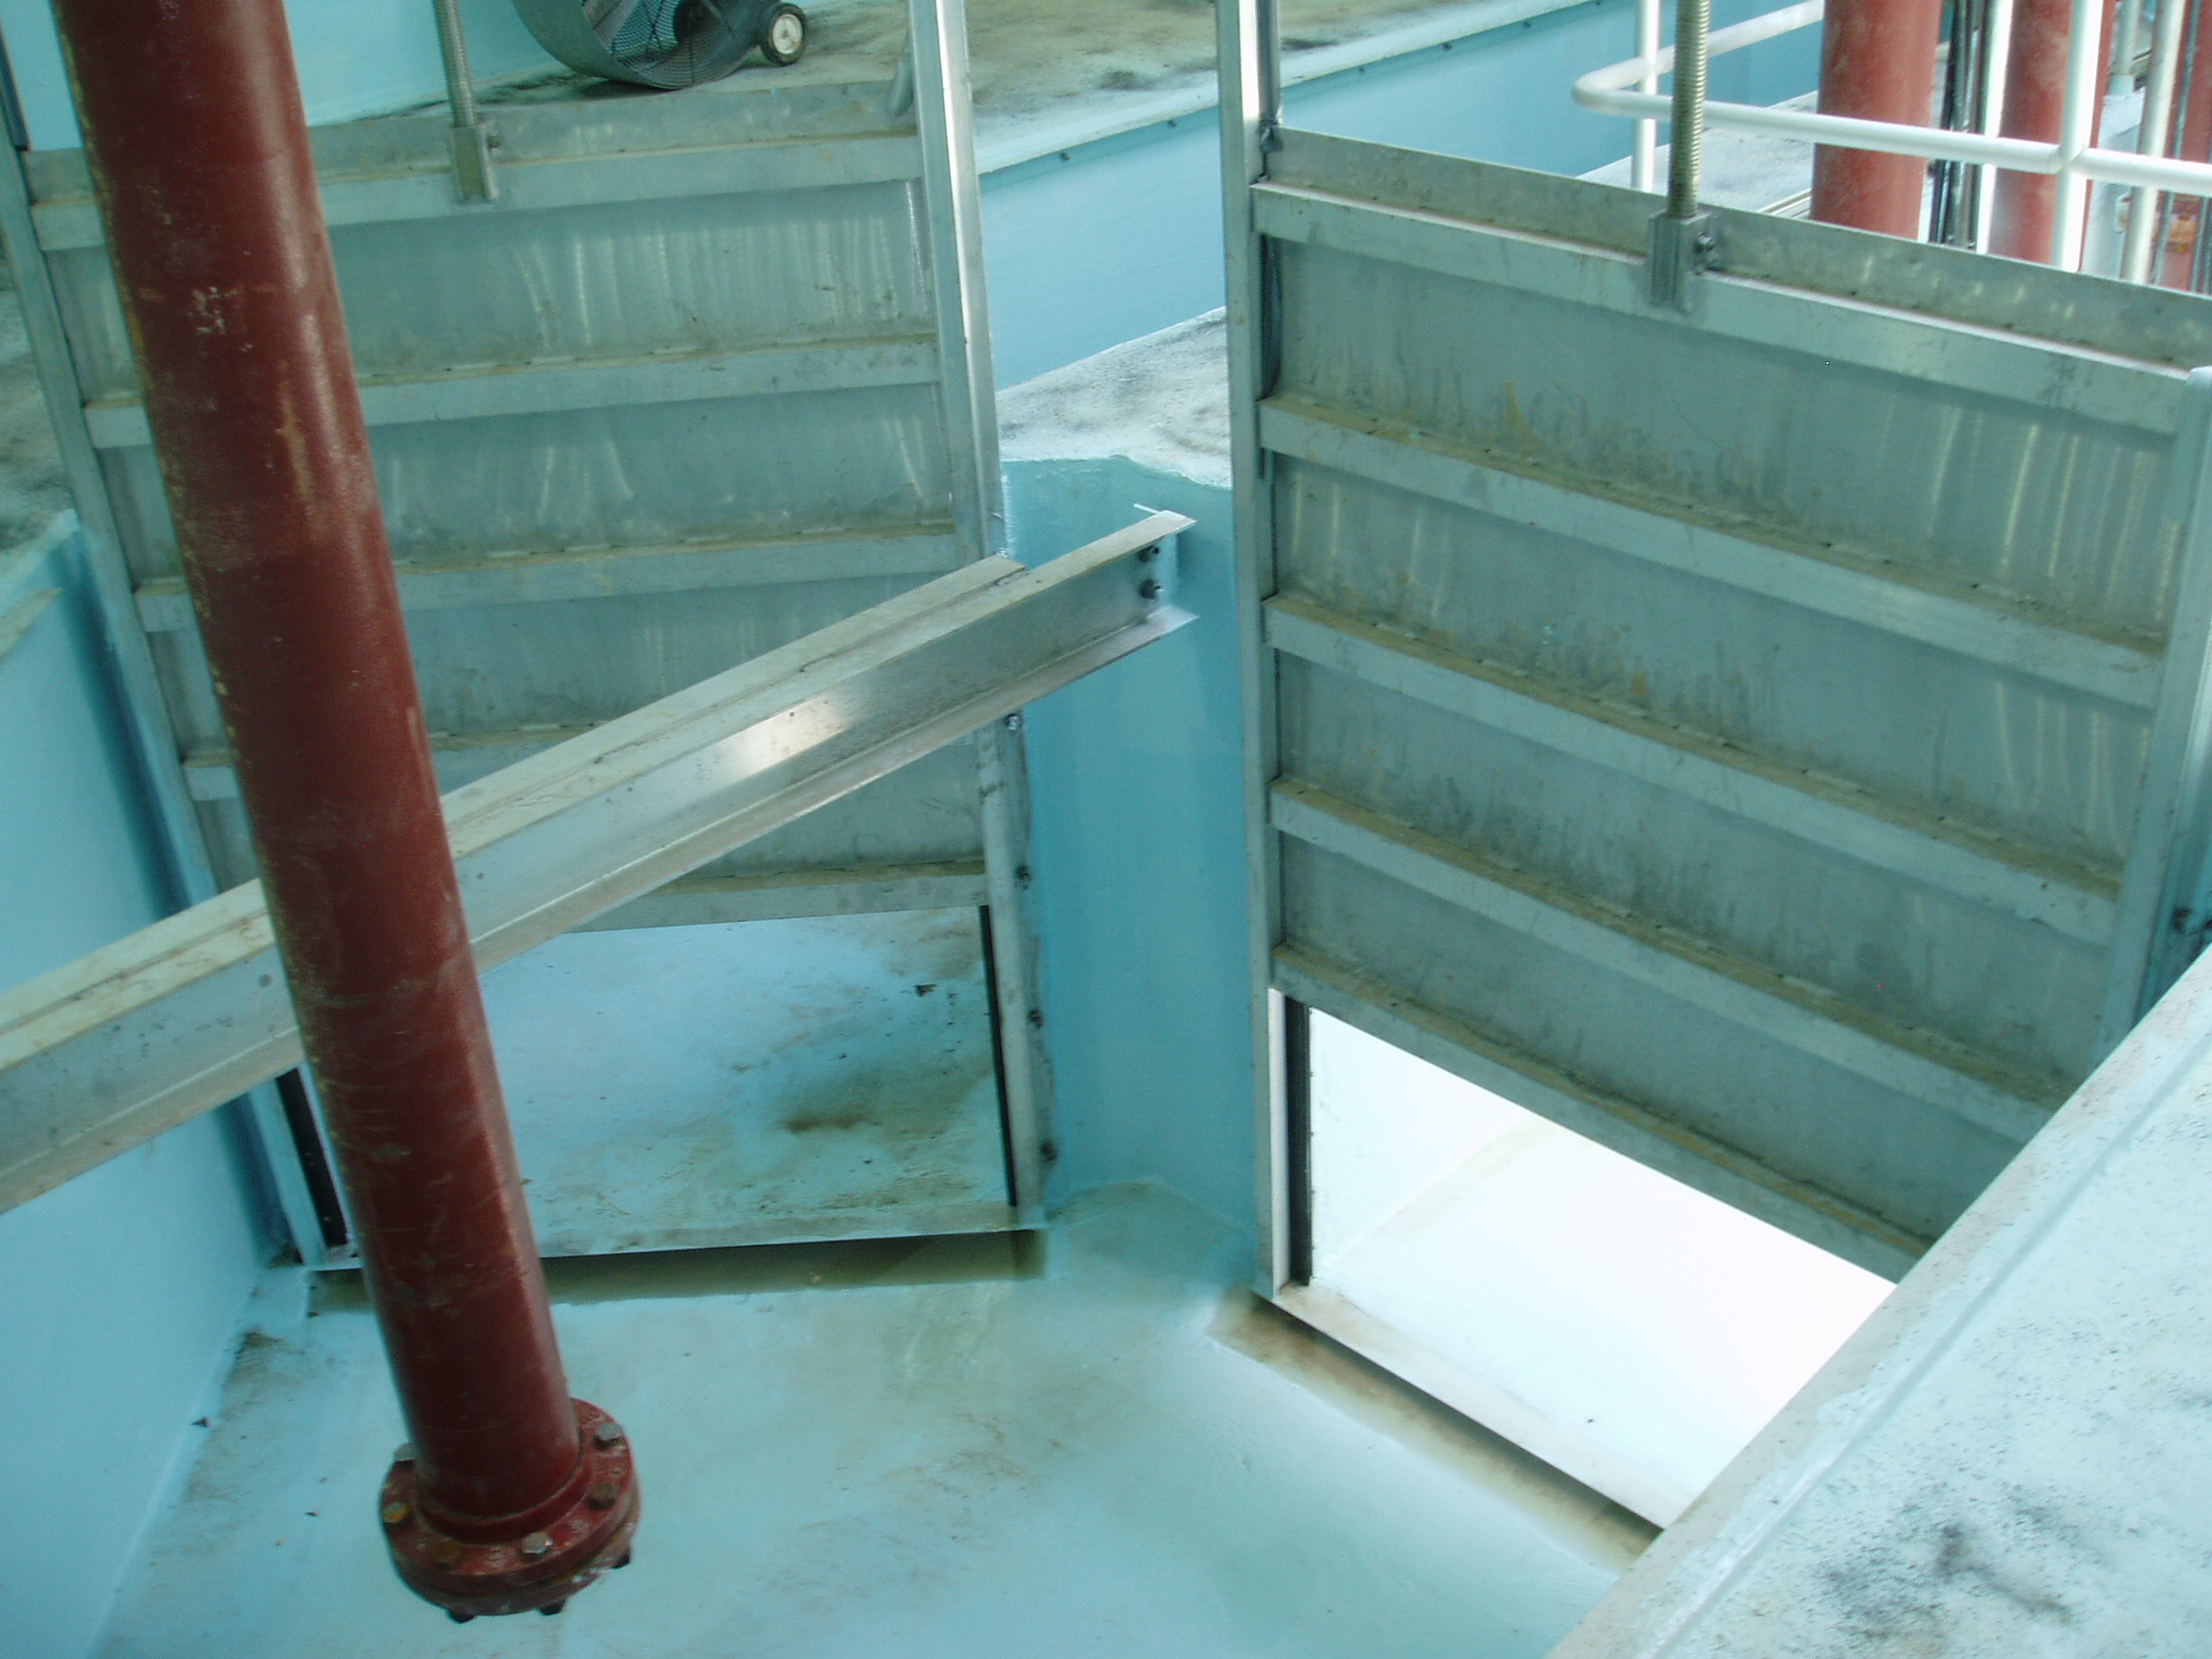 Raven Epoxy applied to sluice gate channels at a wastewater treatment plant.